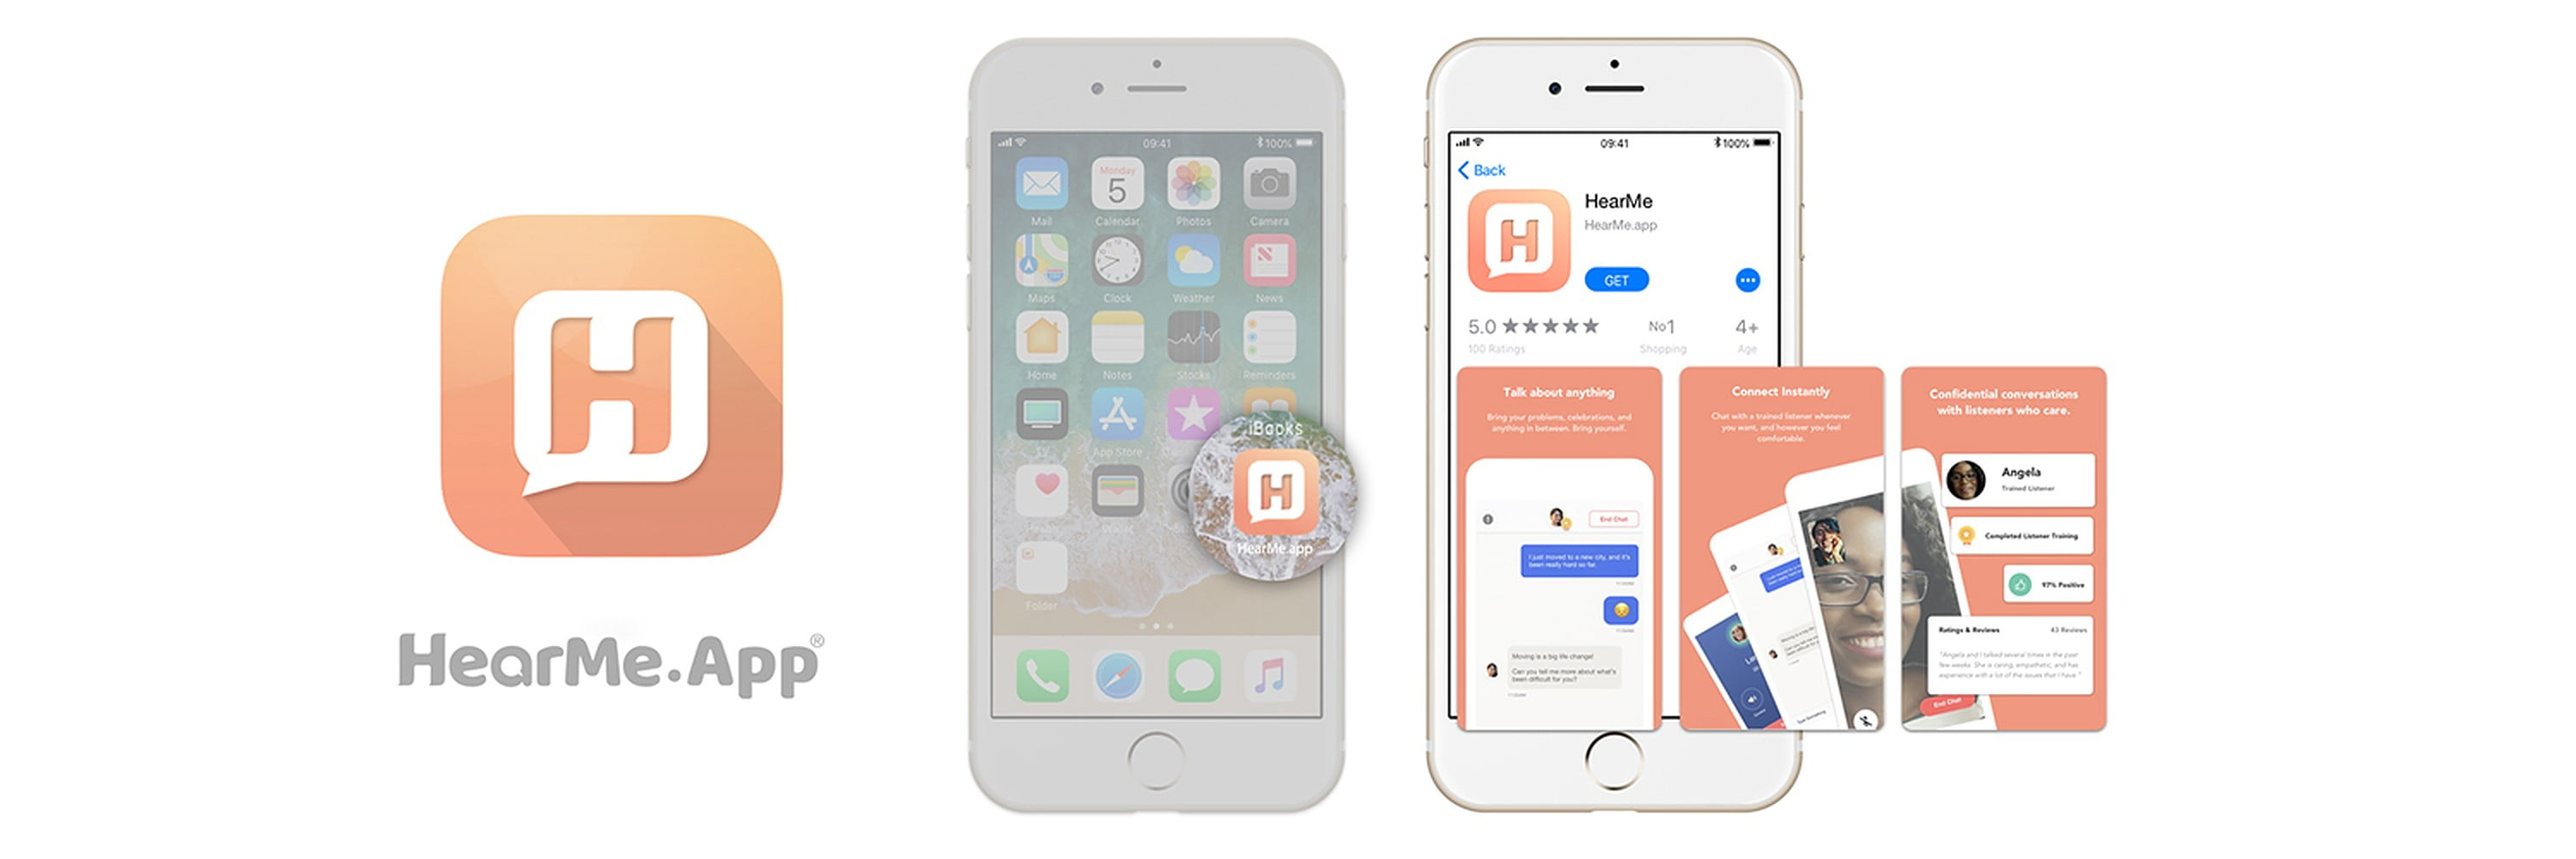 HearMe Launches Emotional Wellness Mobile App